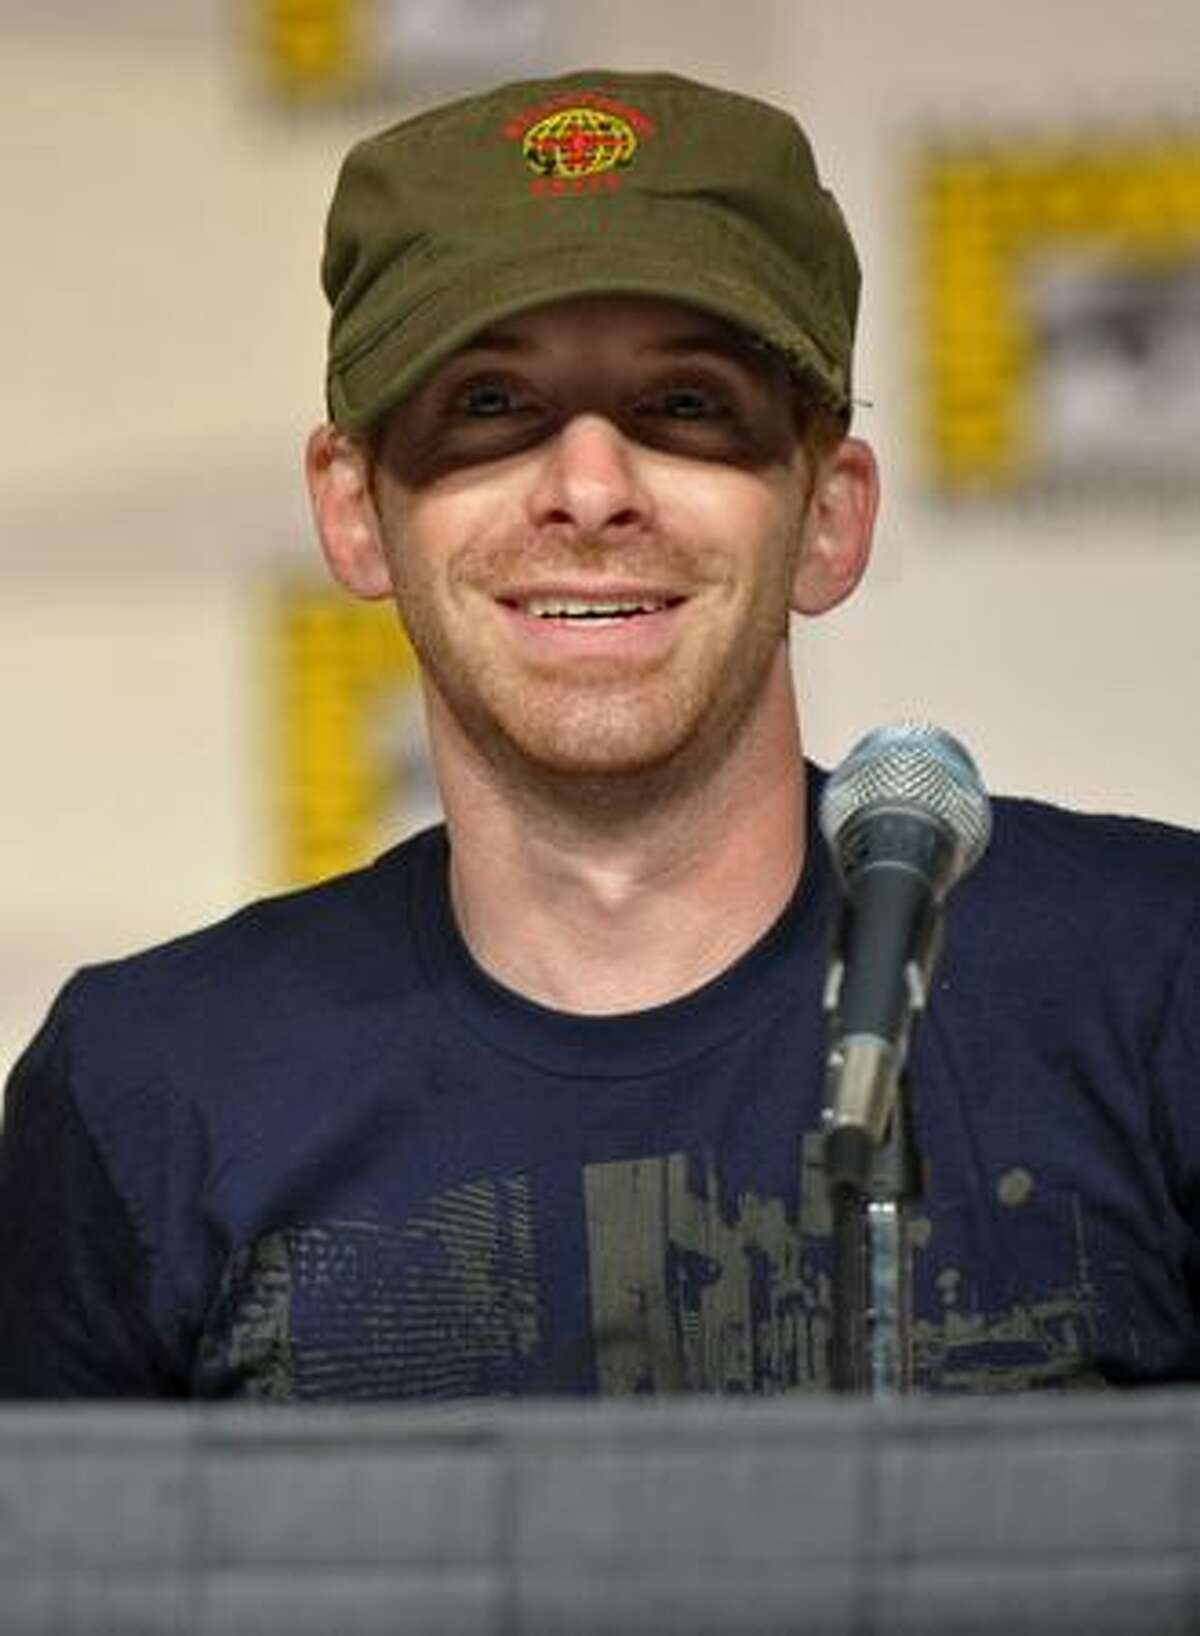 SAN DIEGO - JULY 25: Actor Seth Green speaks at the